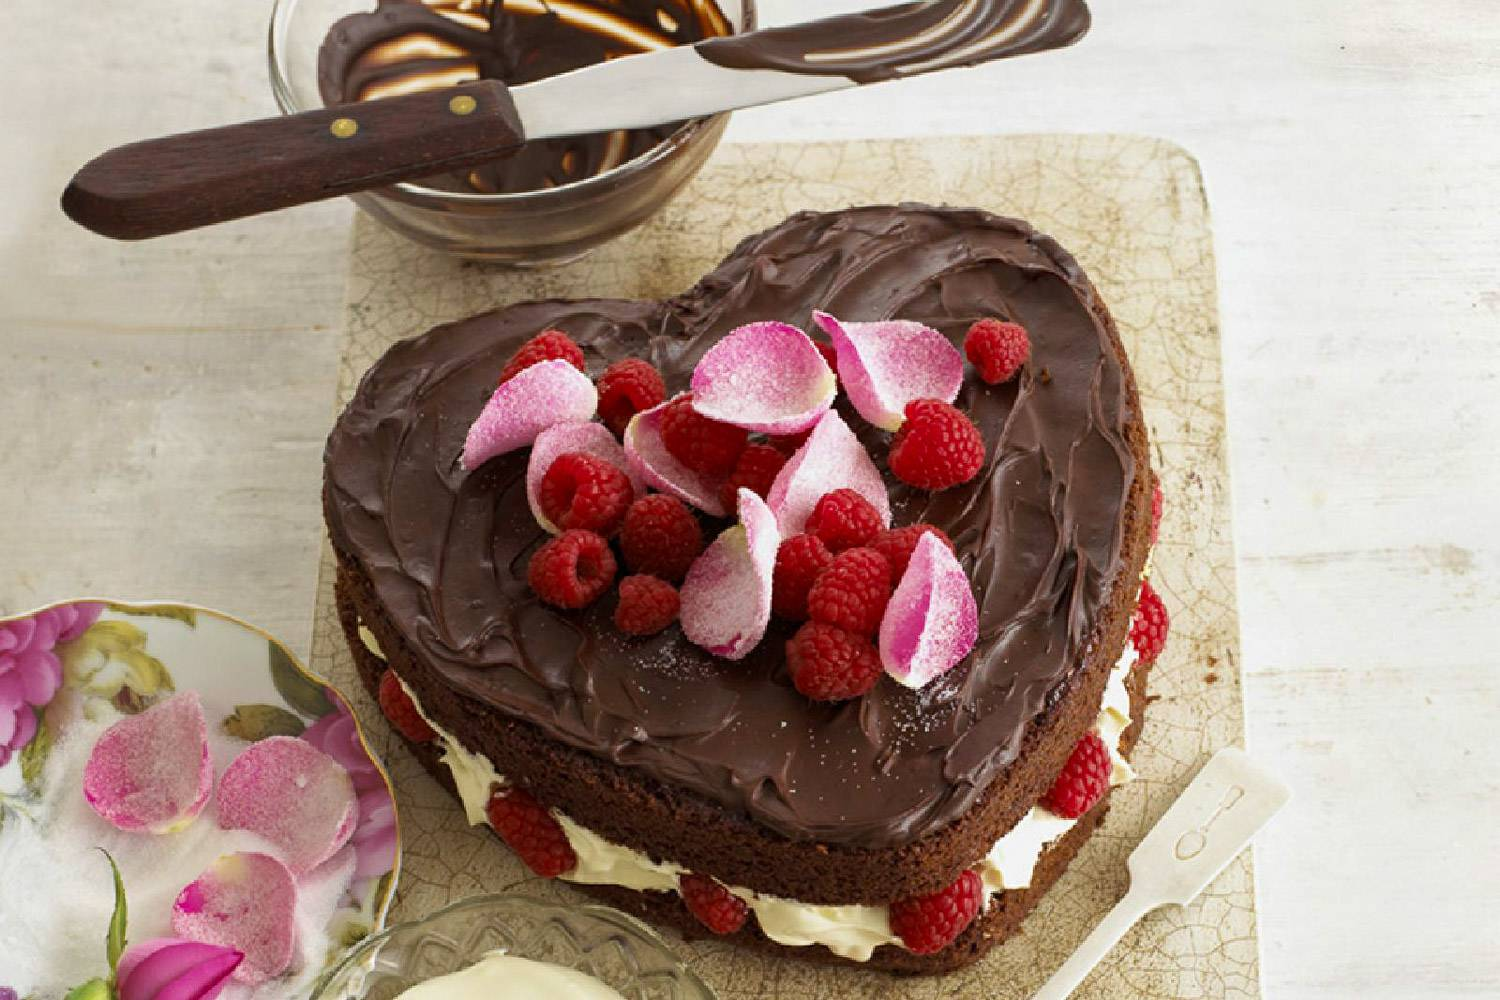 Image of a heart shaped chocolate cake covered with fruit and rose petals and a spatula dipped in chocolate